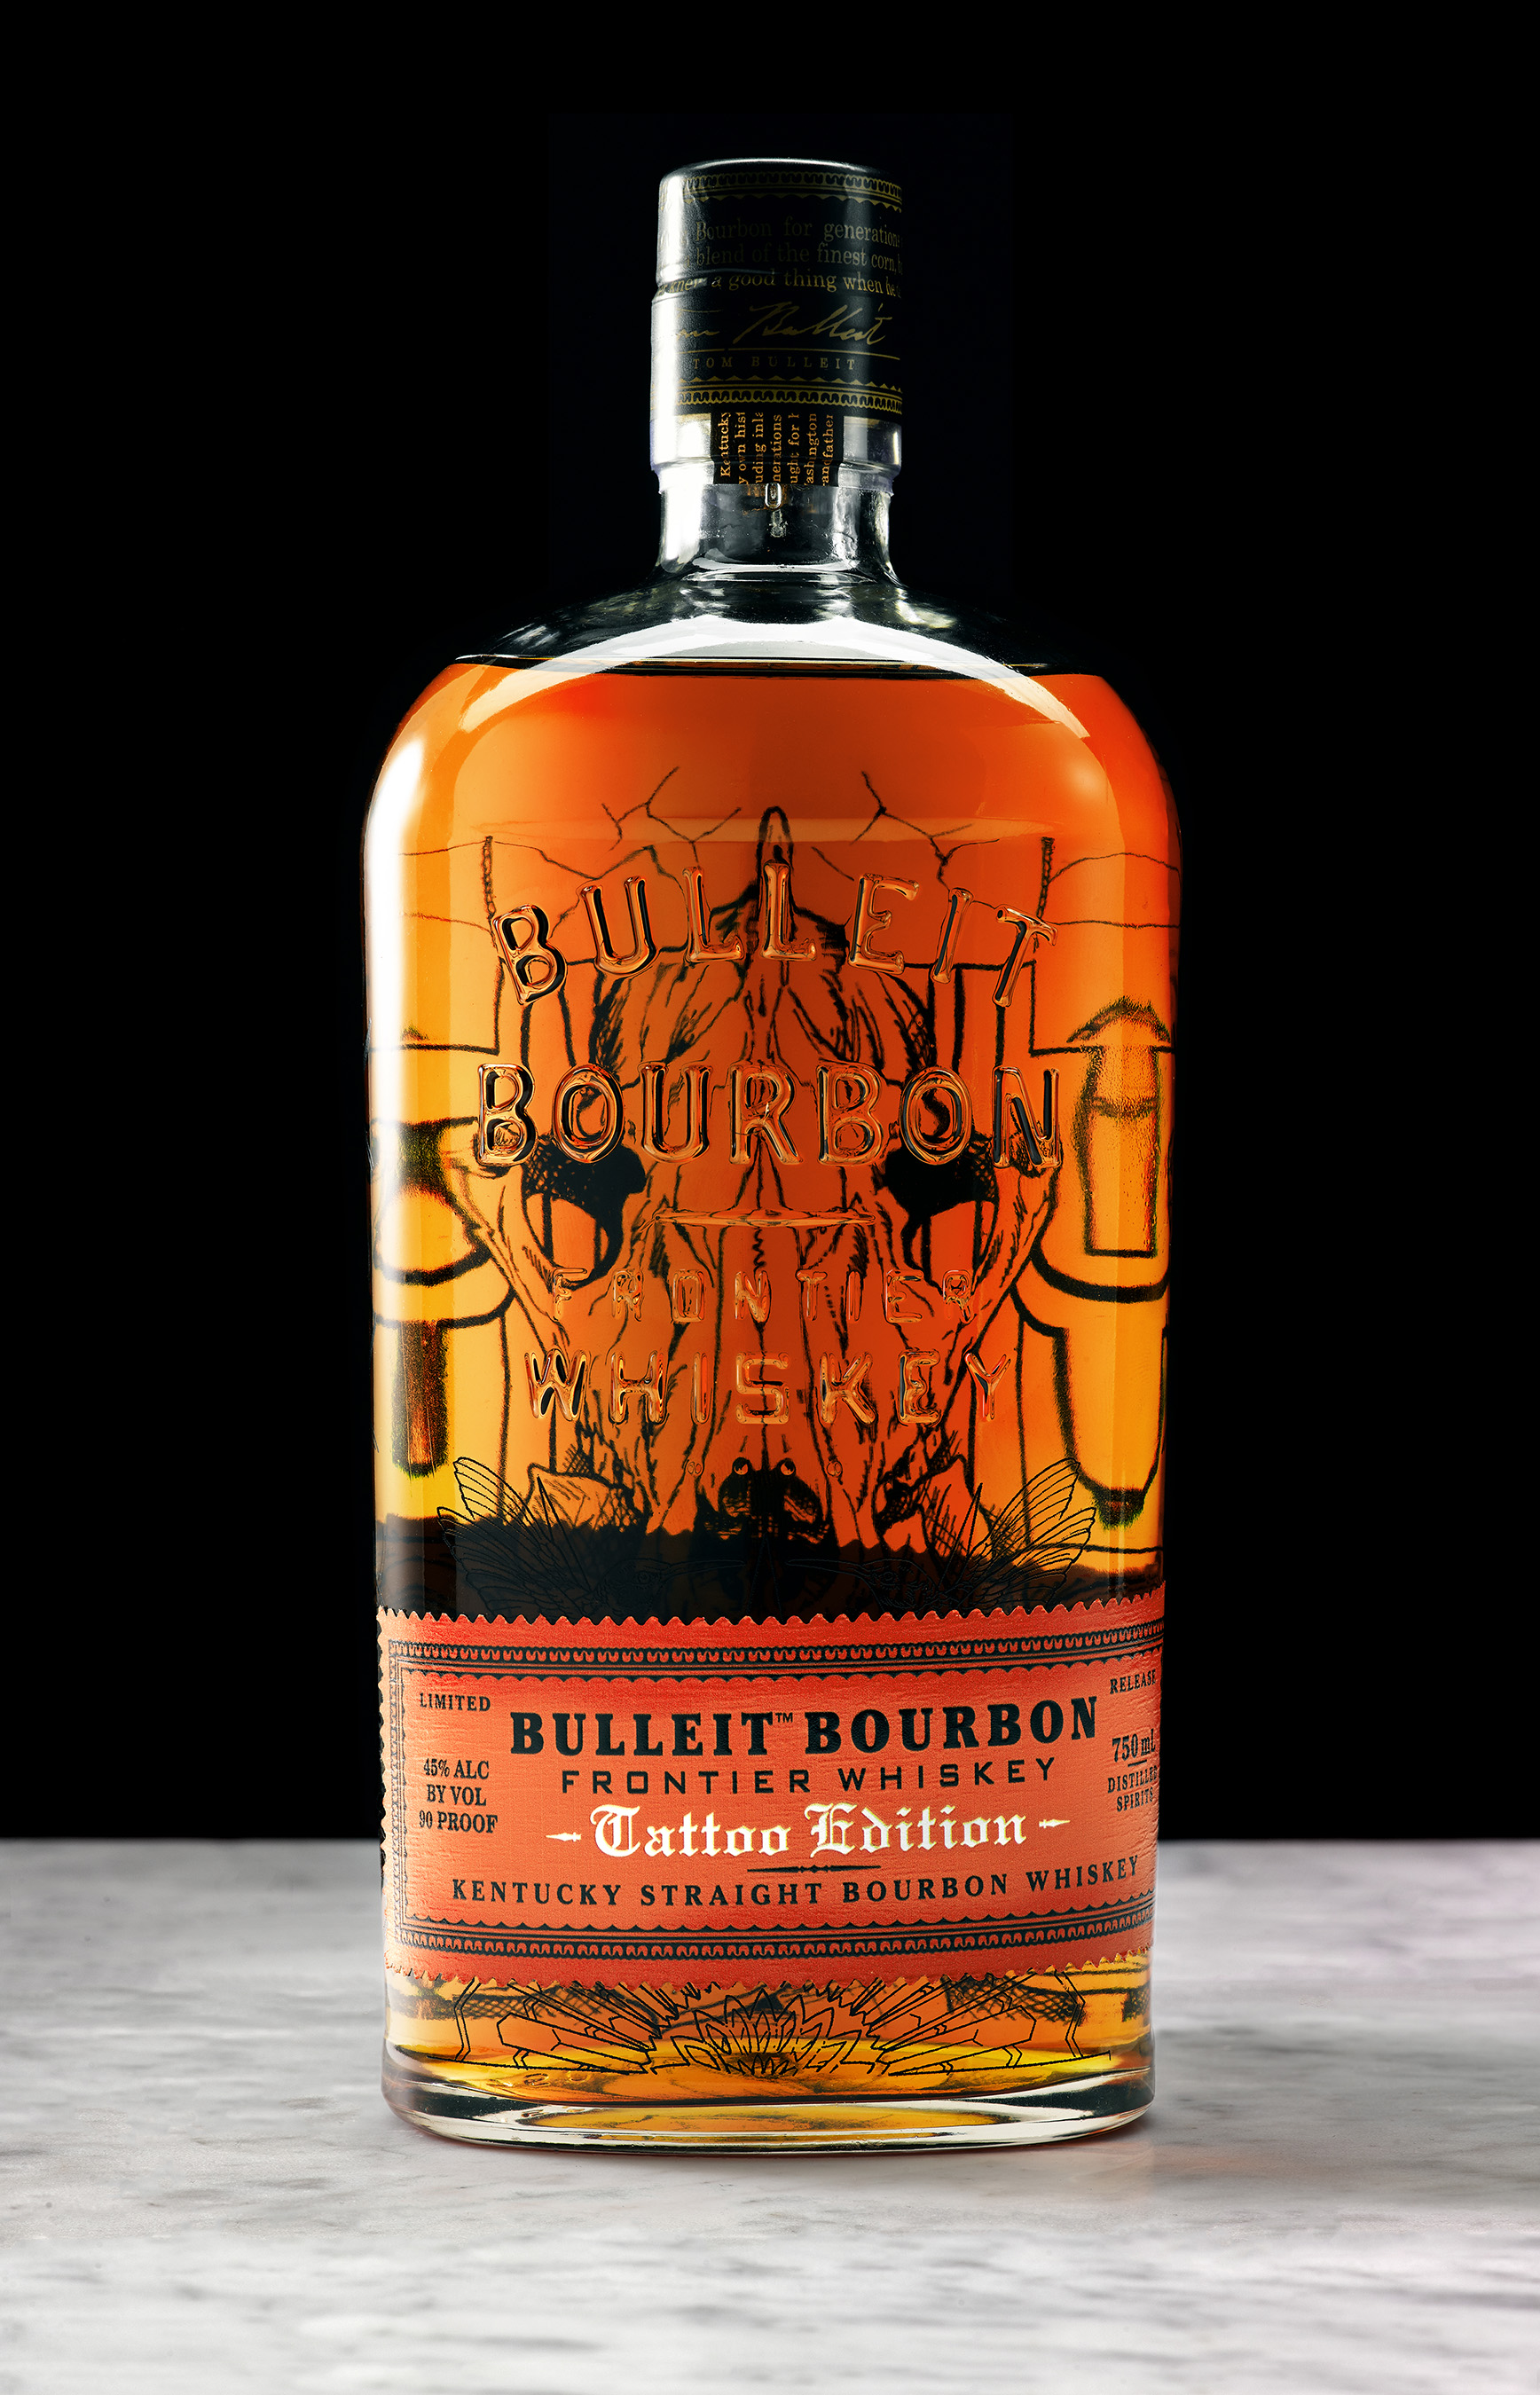 Bulleit Bourbon Tattoo Edition bottle designed by Los Angeles tattoo artist Shawn Barber